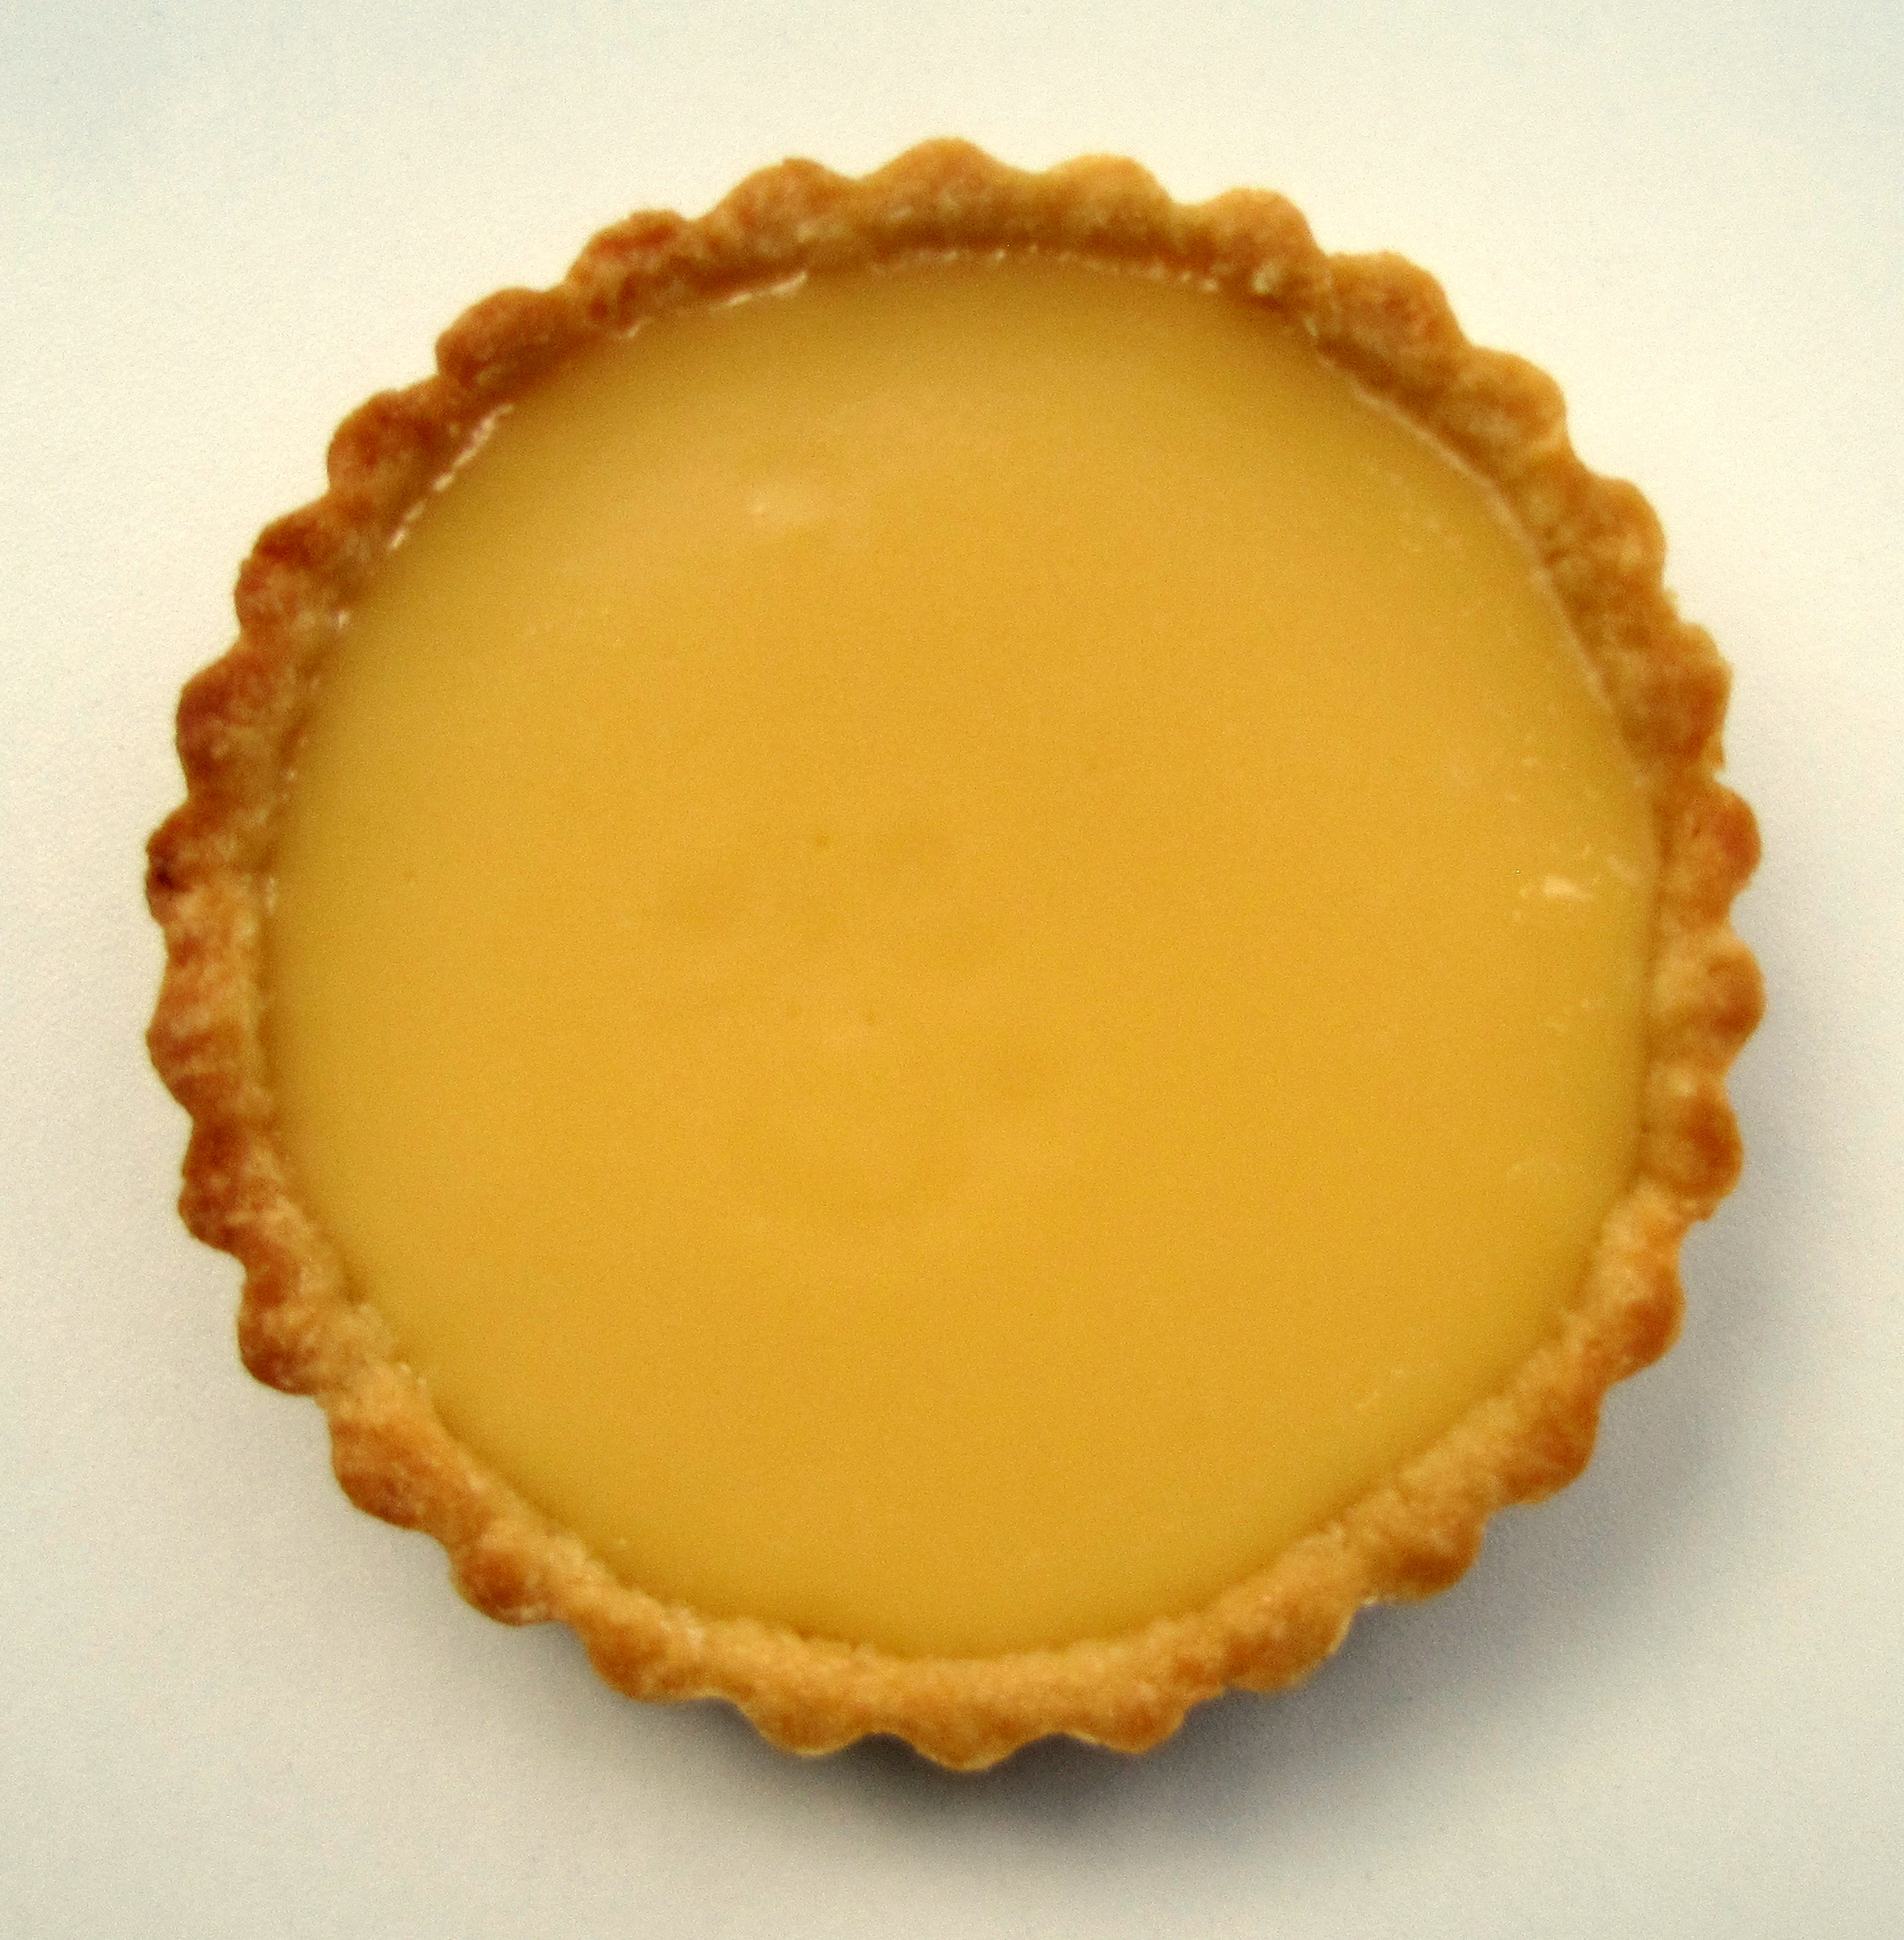 ... tart lemon tart proper lemon tart 100th post lemon tart lemon tart